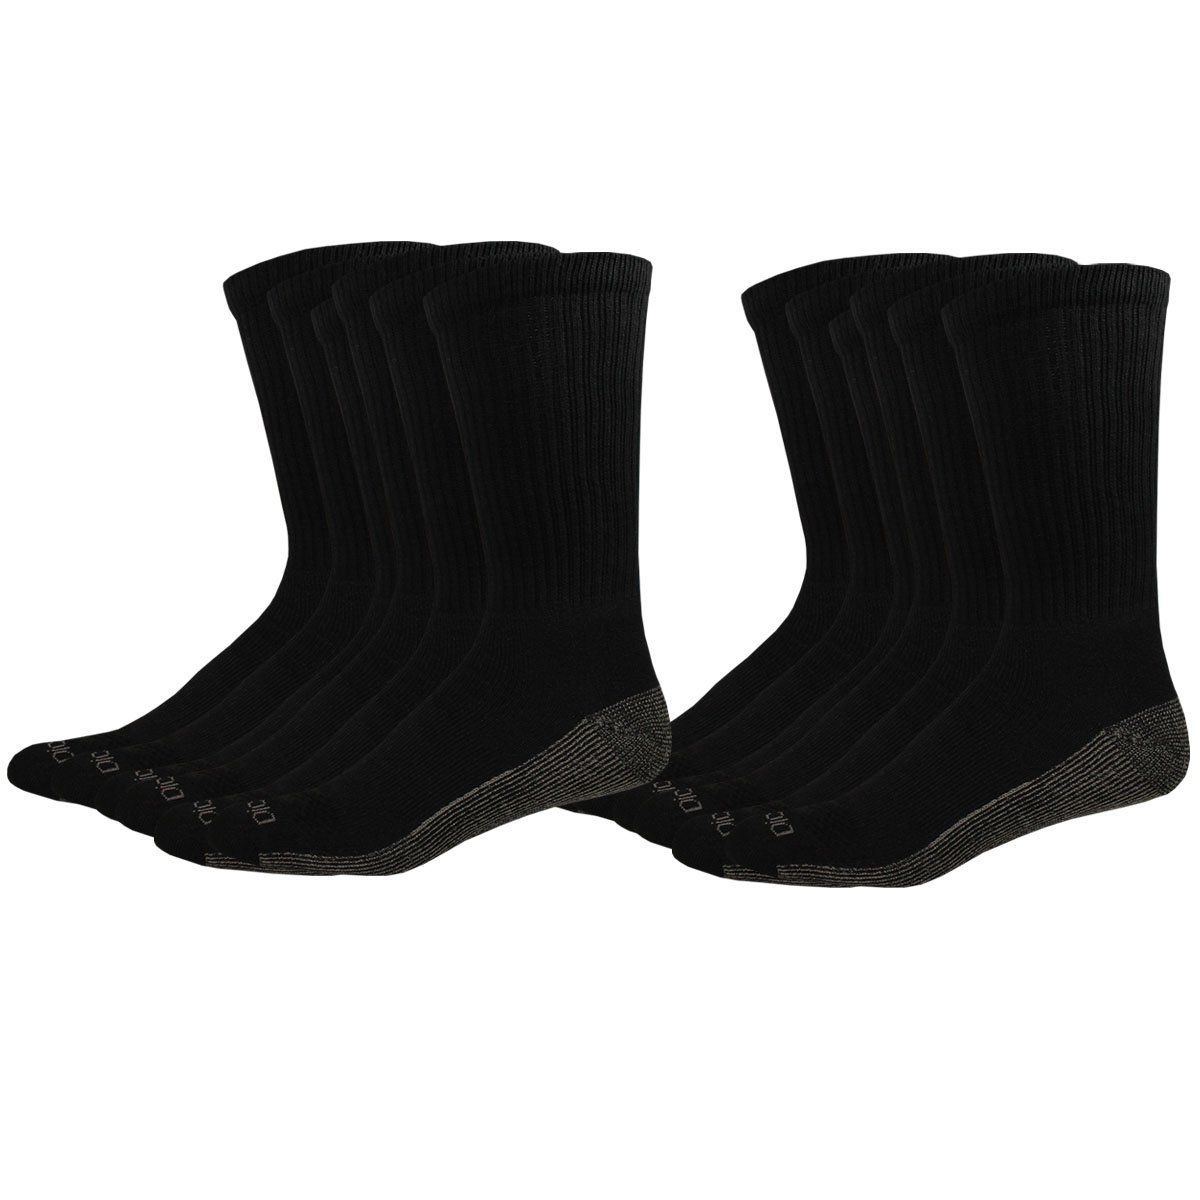 Dickies Men's Multi-Pack Dri-Tech Moisture Control Crew, Black 12 Pack, Sock Size: 10-13/Shoe Size: 6-12